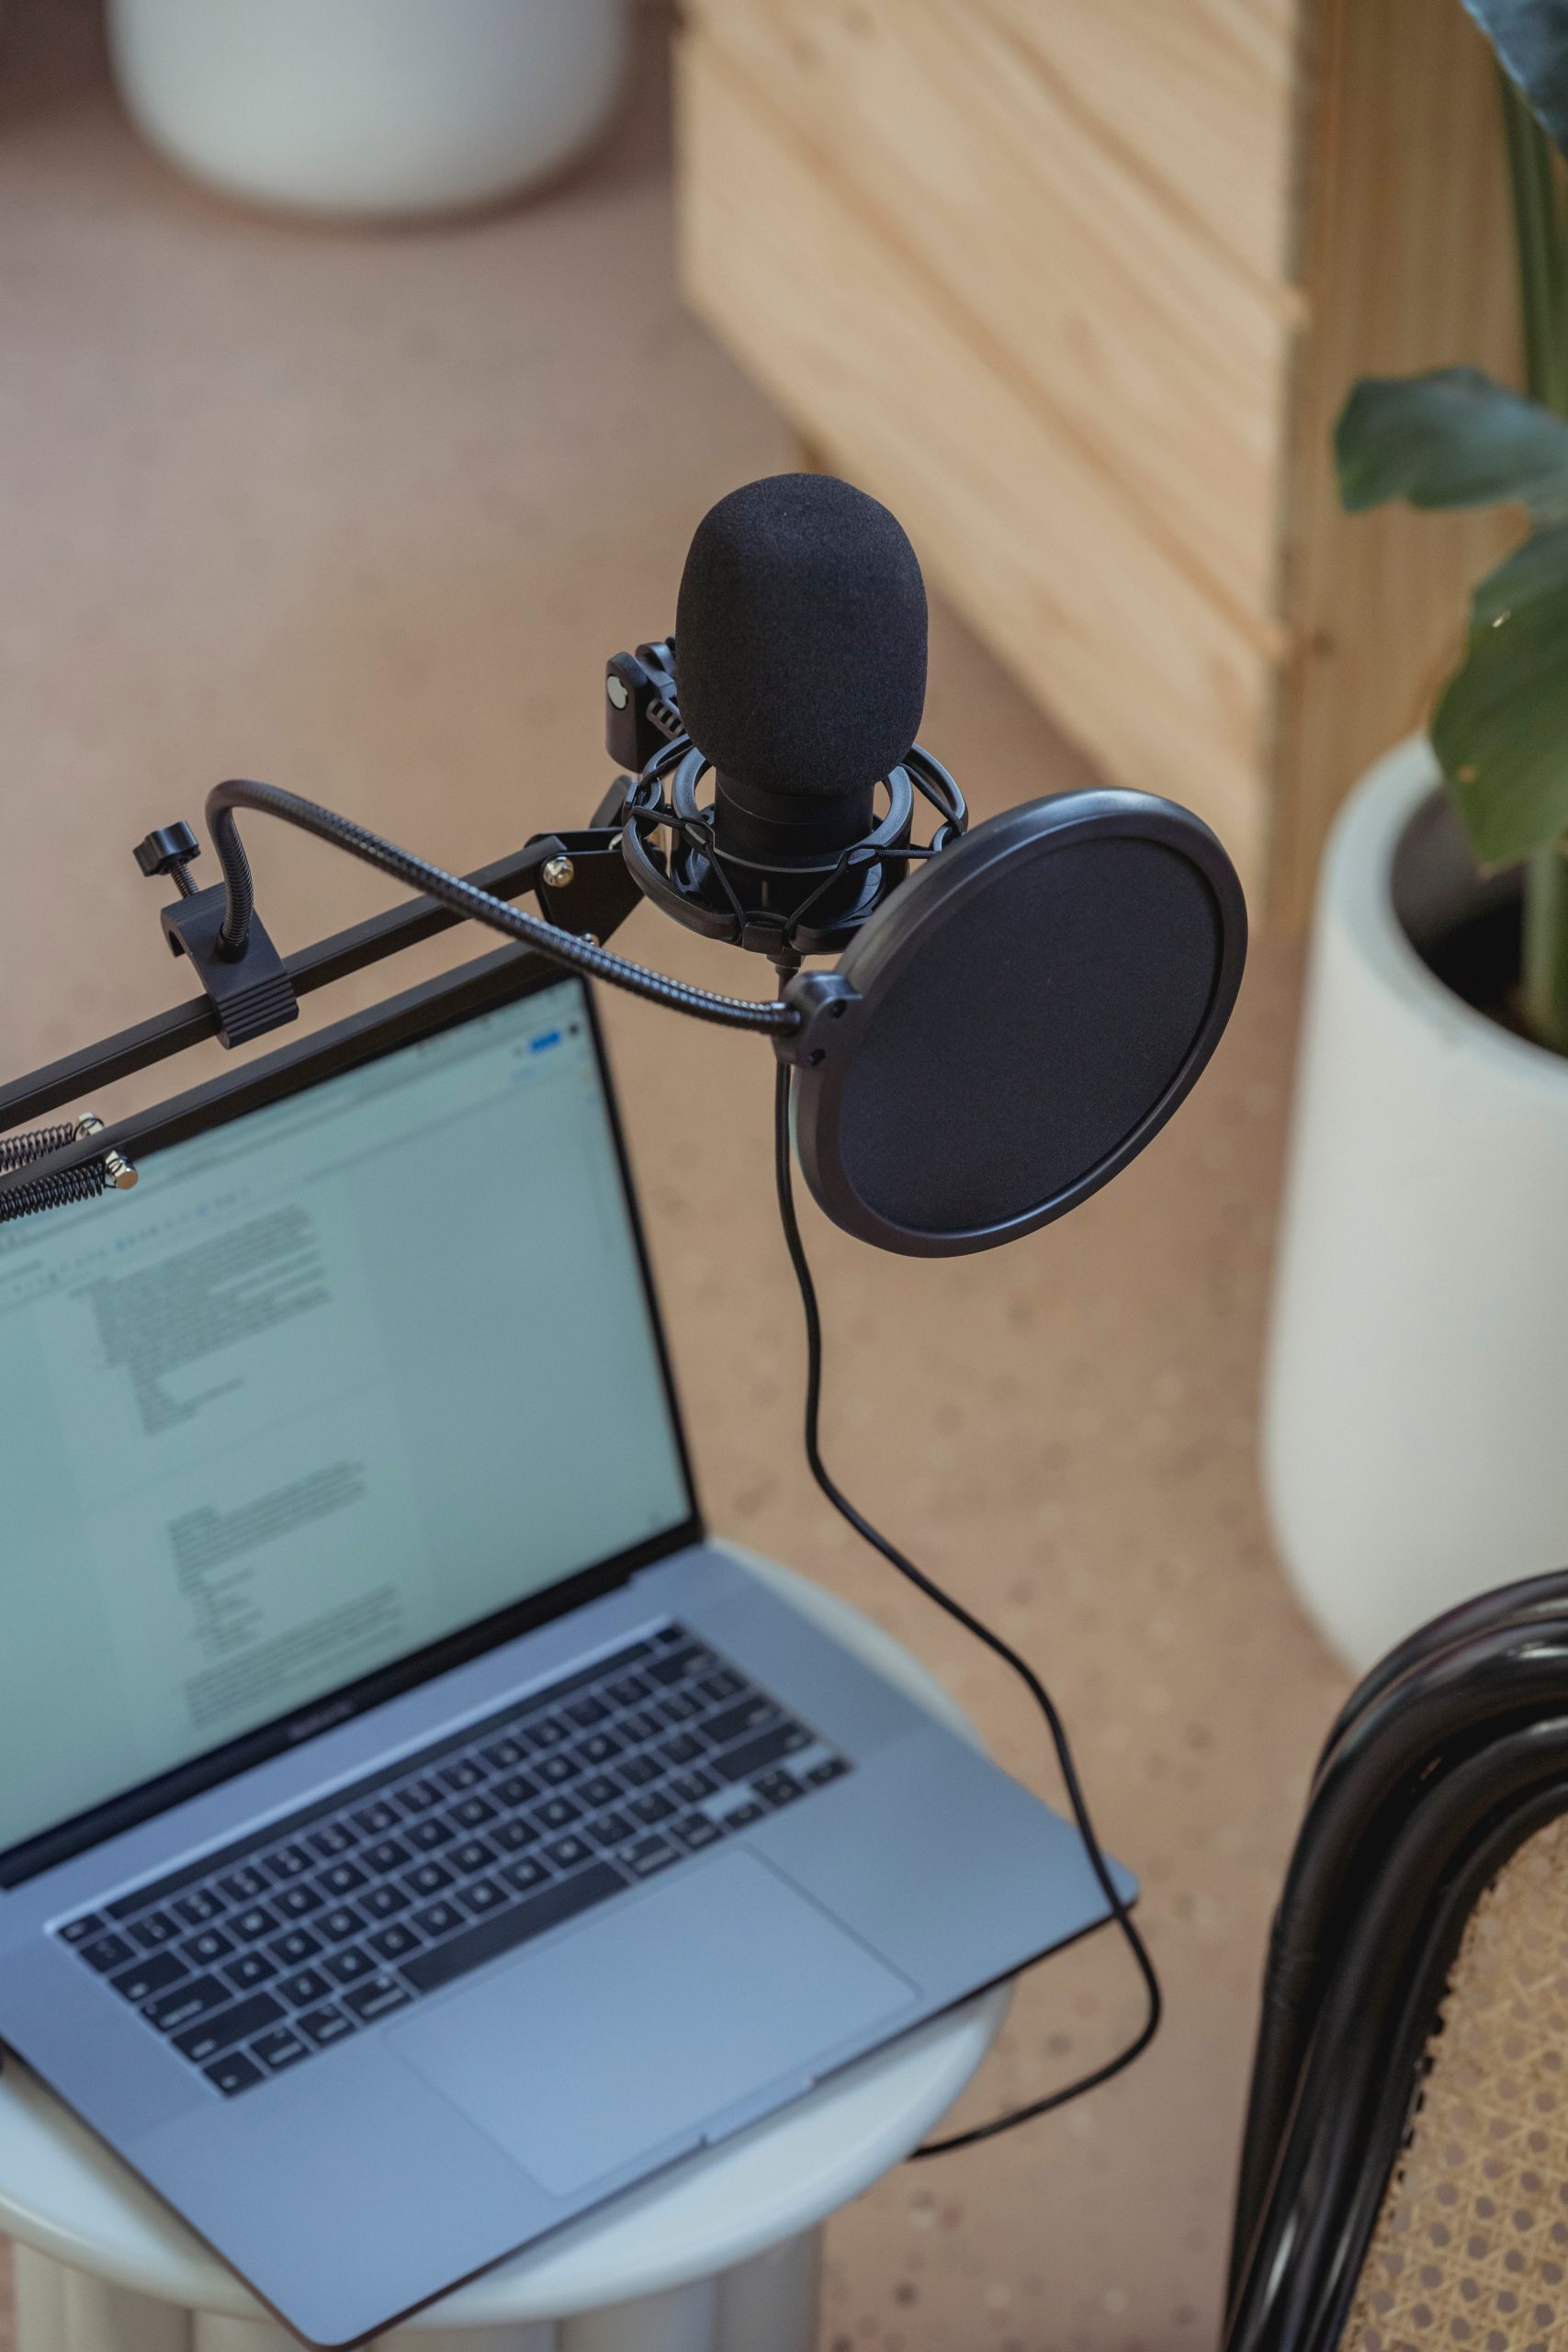 What is podcasting, and how does it work?